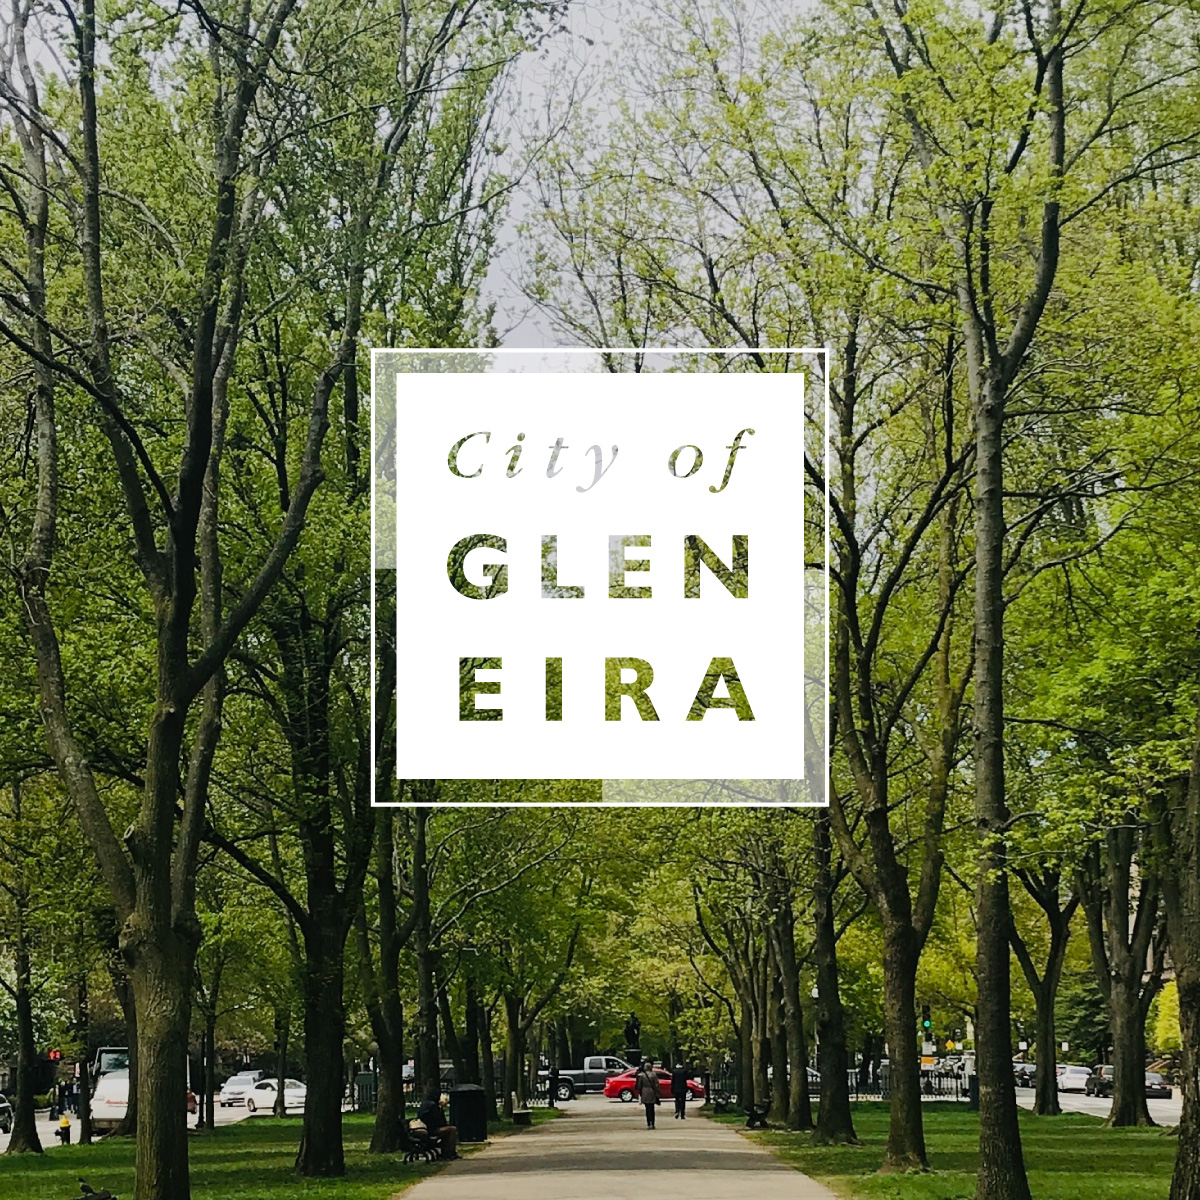 City of Glen Eira Competitive Strategy & Mentoring